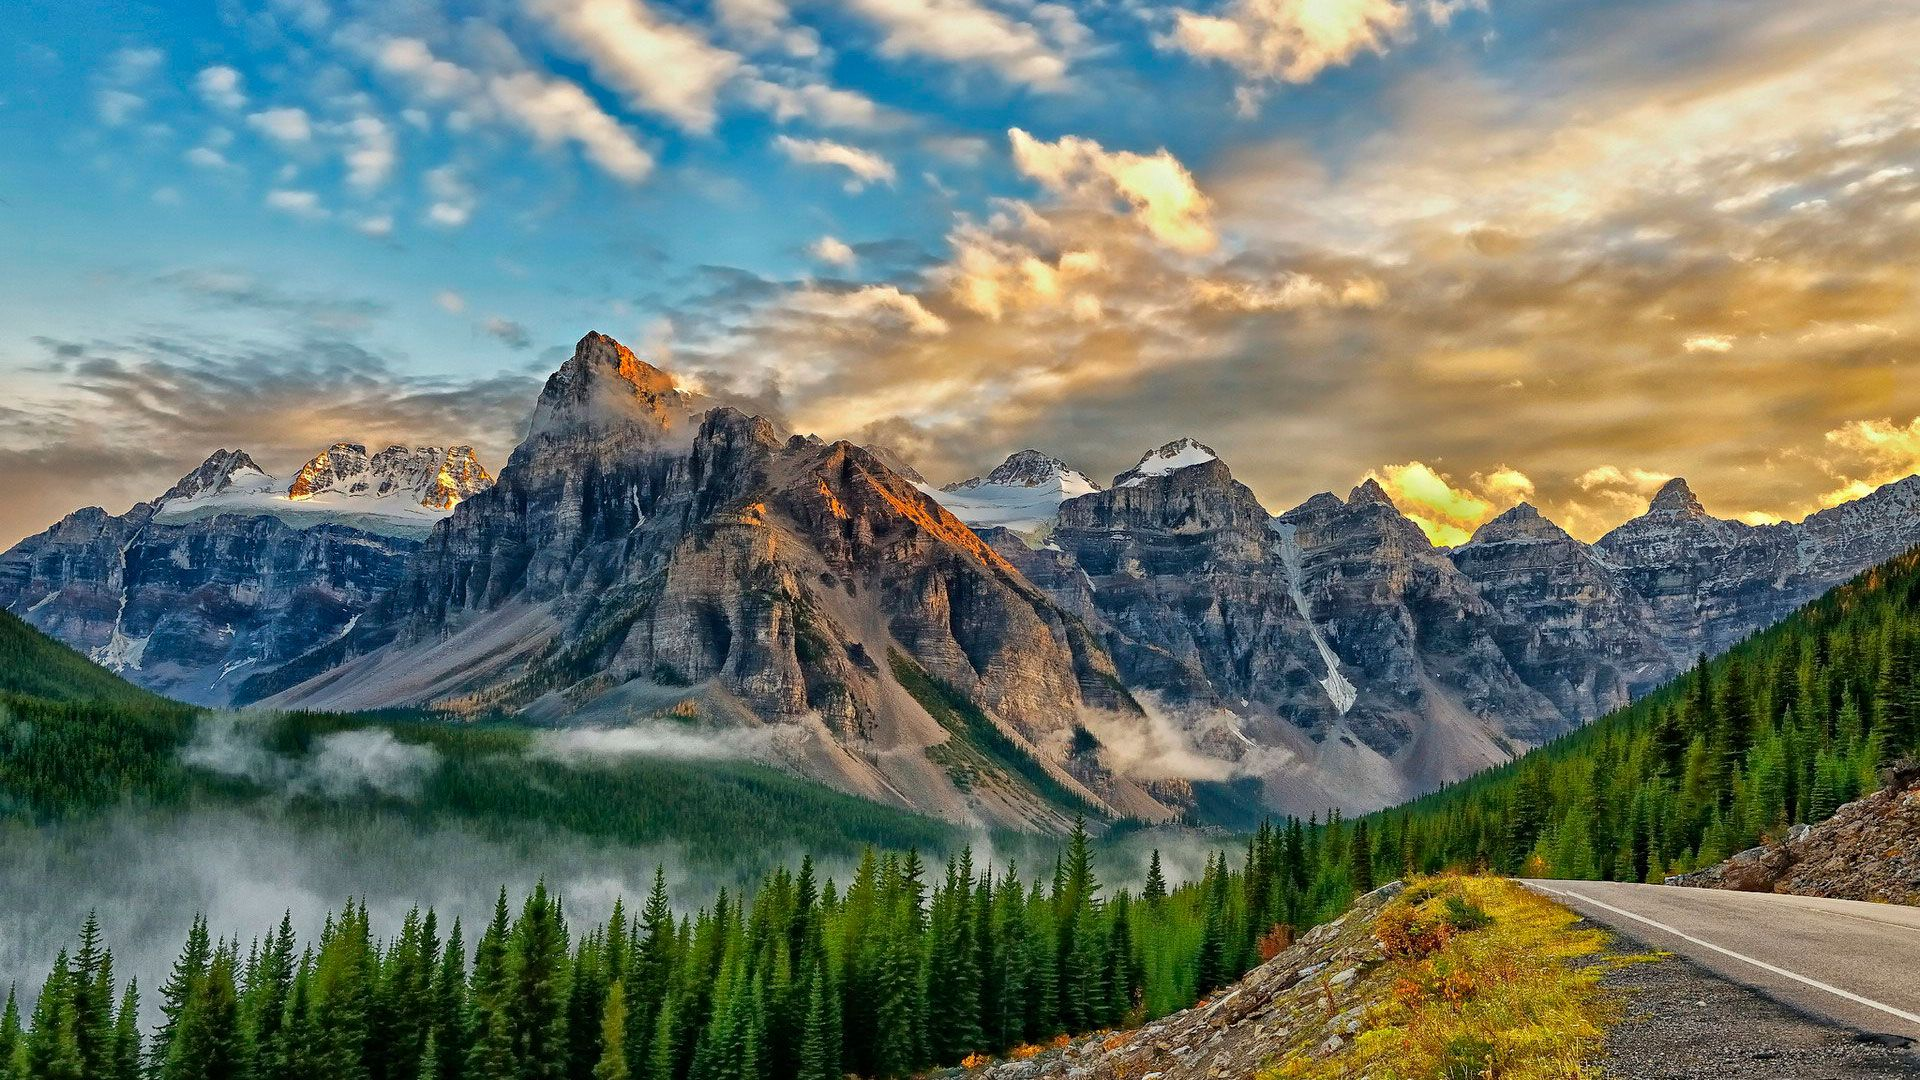 Beautiful Scenery Full Hd Wallpaper 1920x1080 Banff National Park Canada National Parks Trip Banff National Park